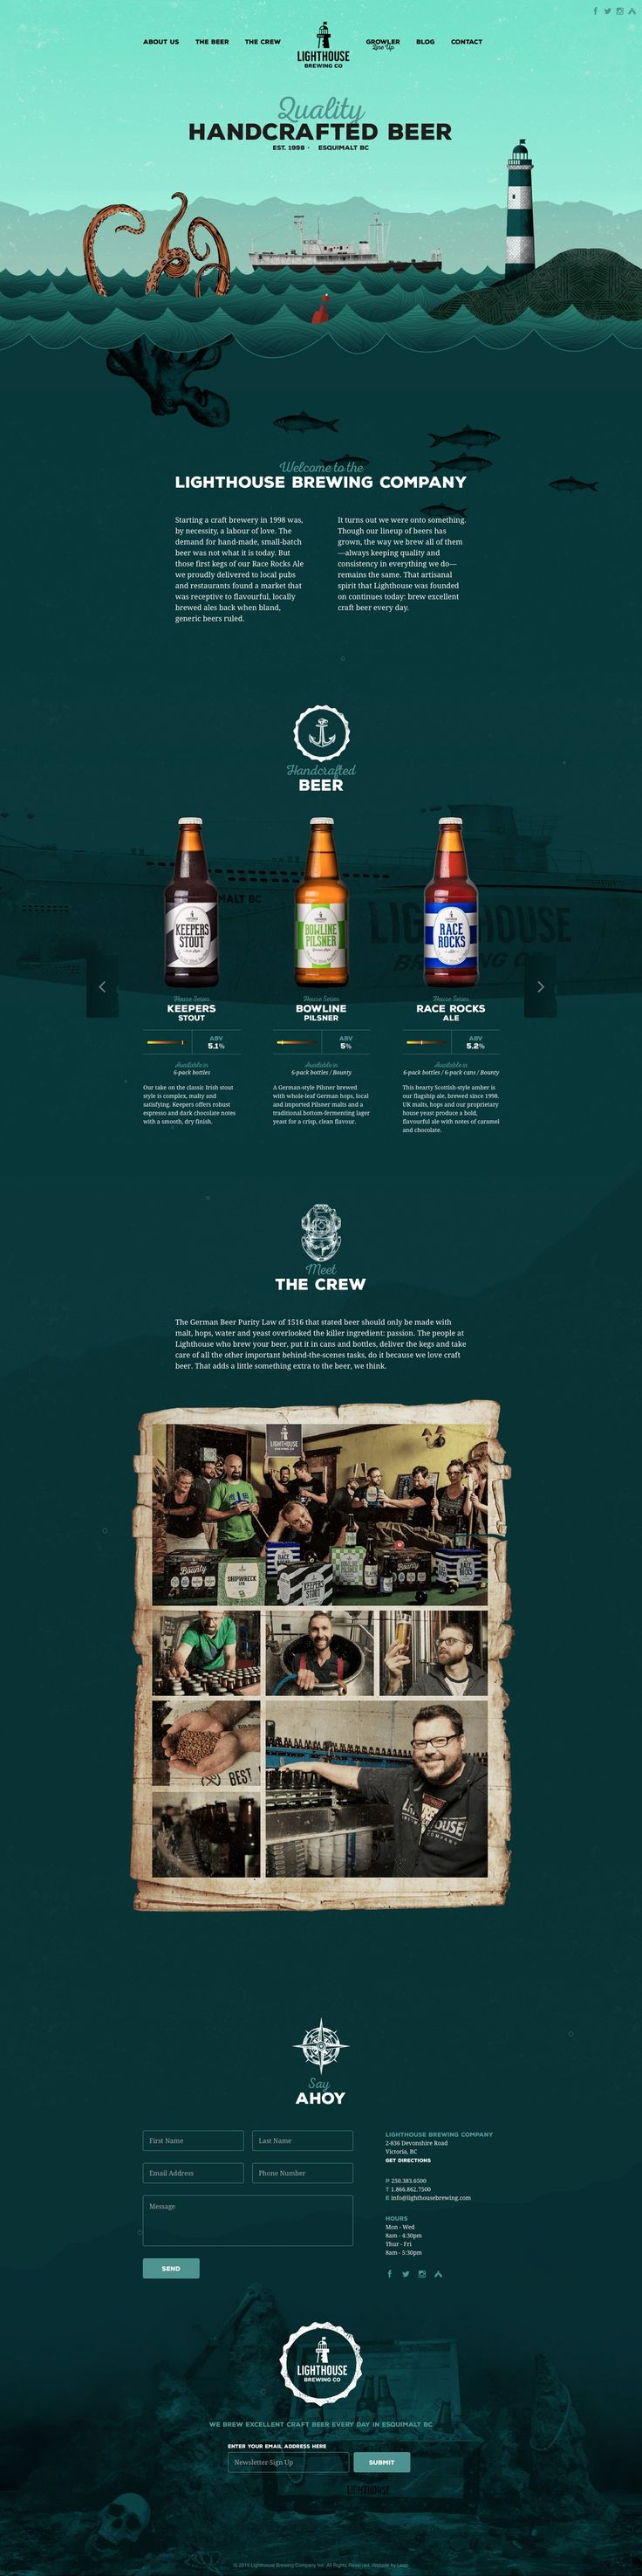 Lighthouse Brewing Co. Scrolling down the page takes you deeper underwater, and more in depth about the company and beer. #webdesign